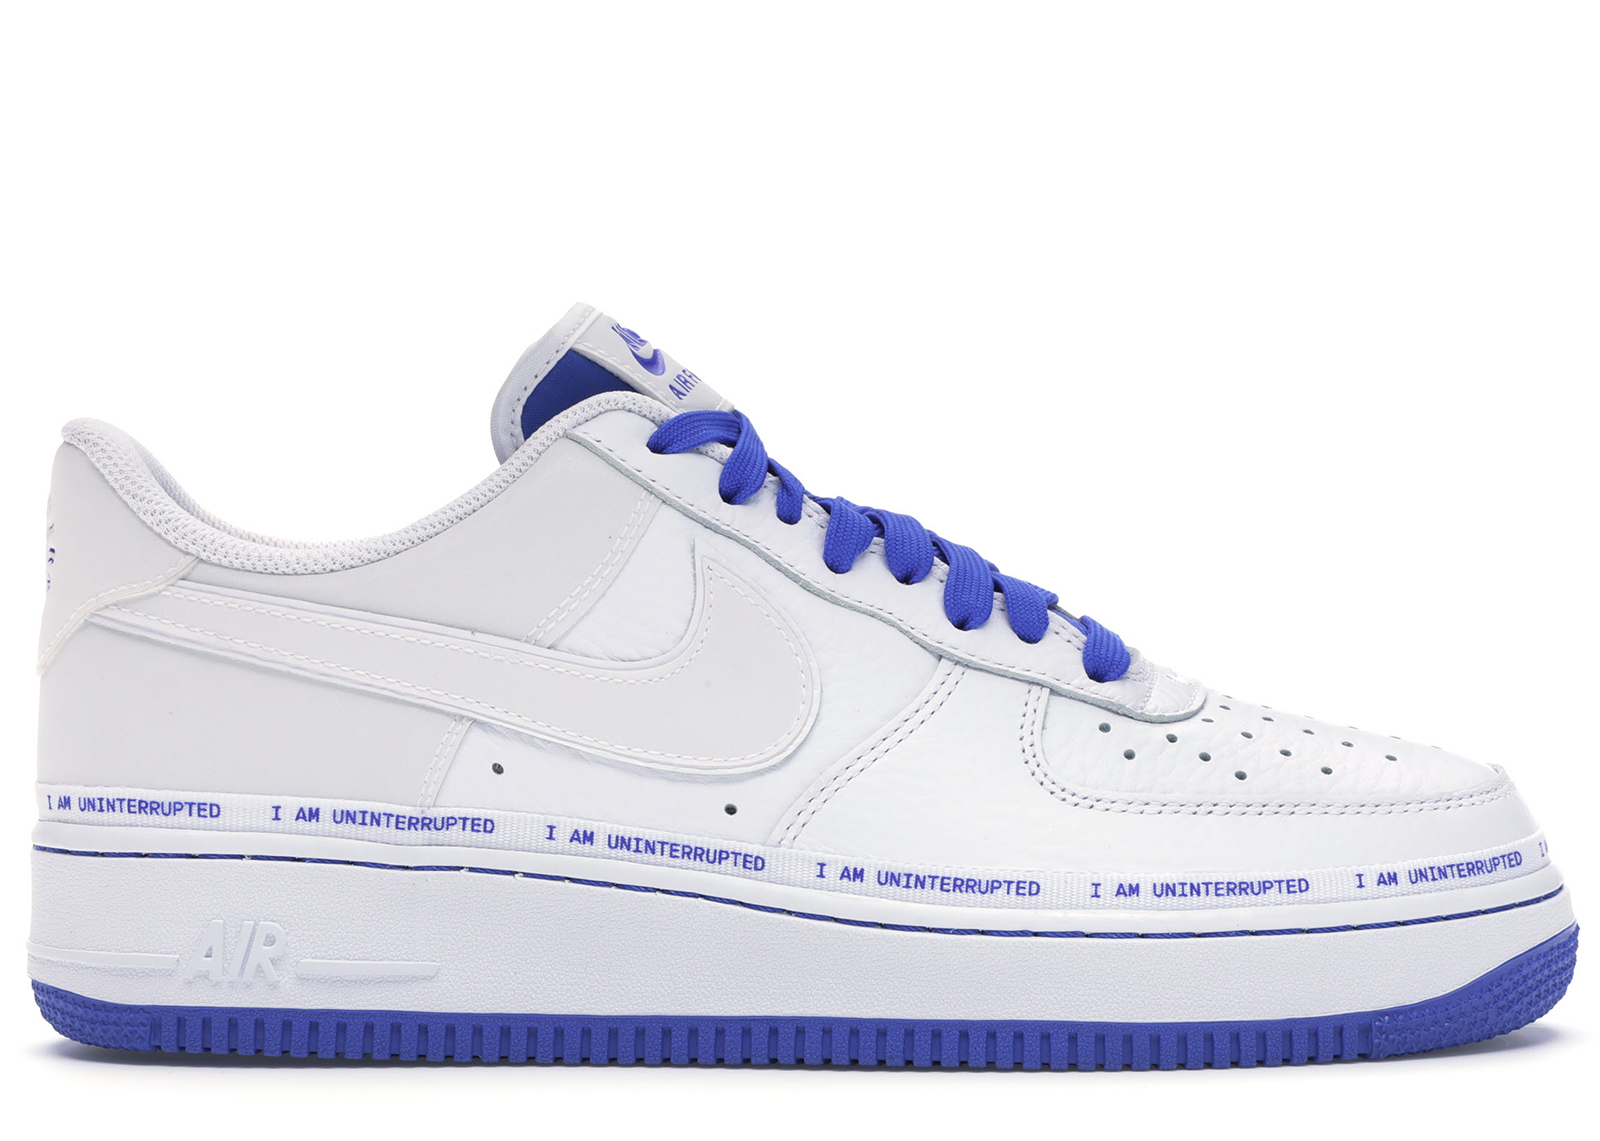 Air Force 1 Low Uninterrupted More Than an Athlete